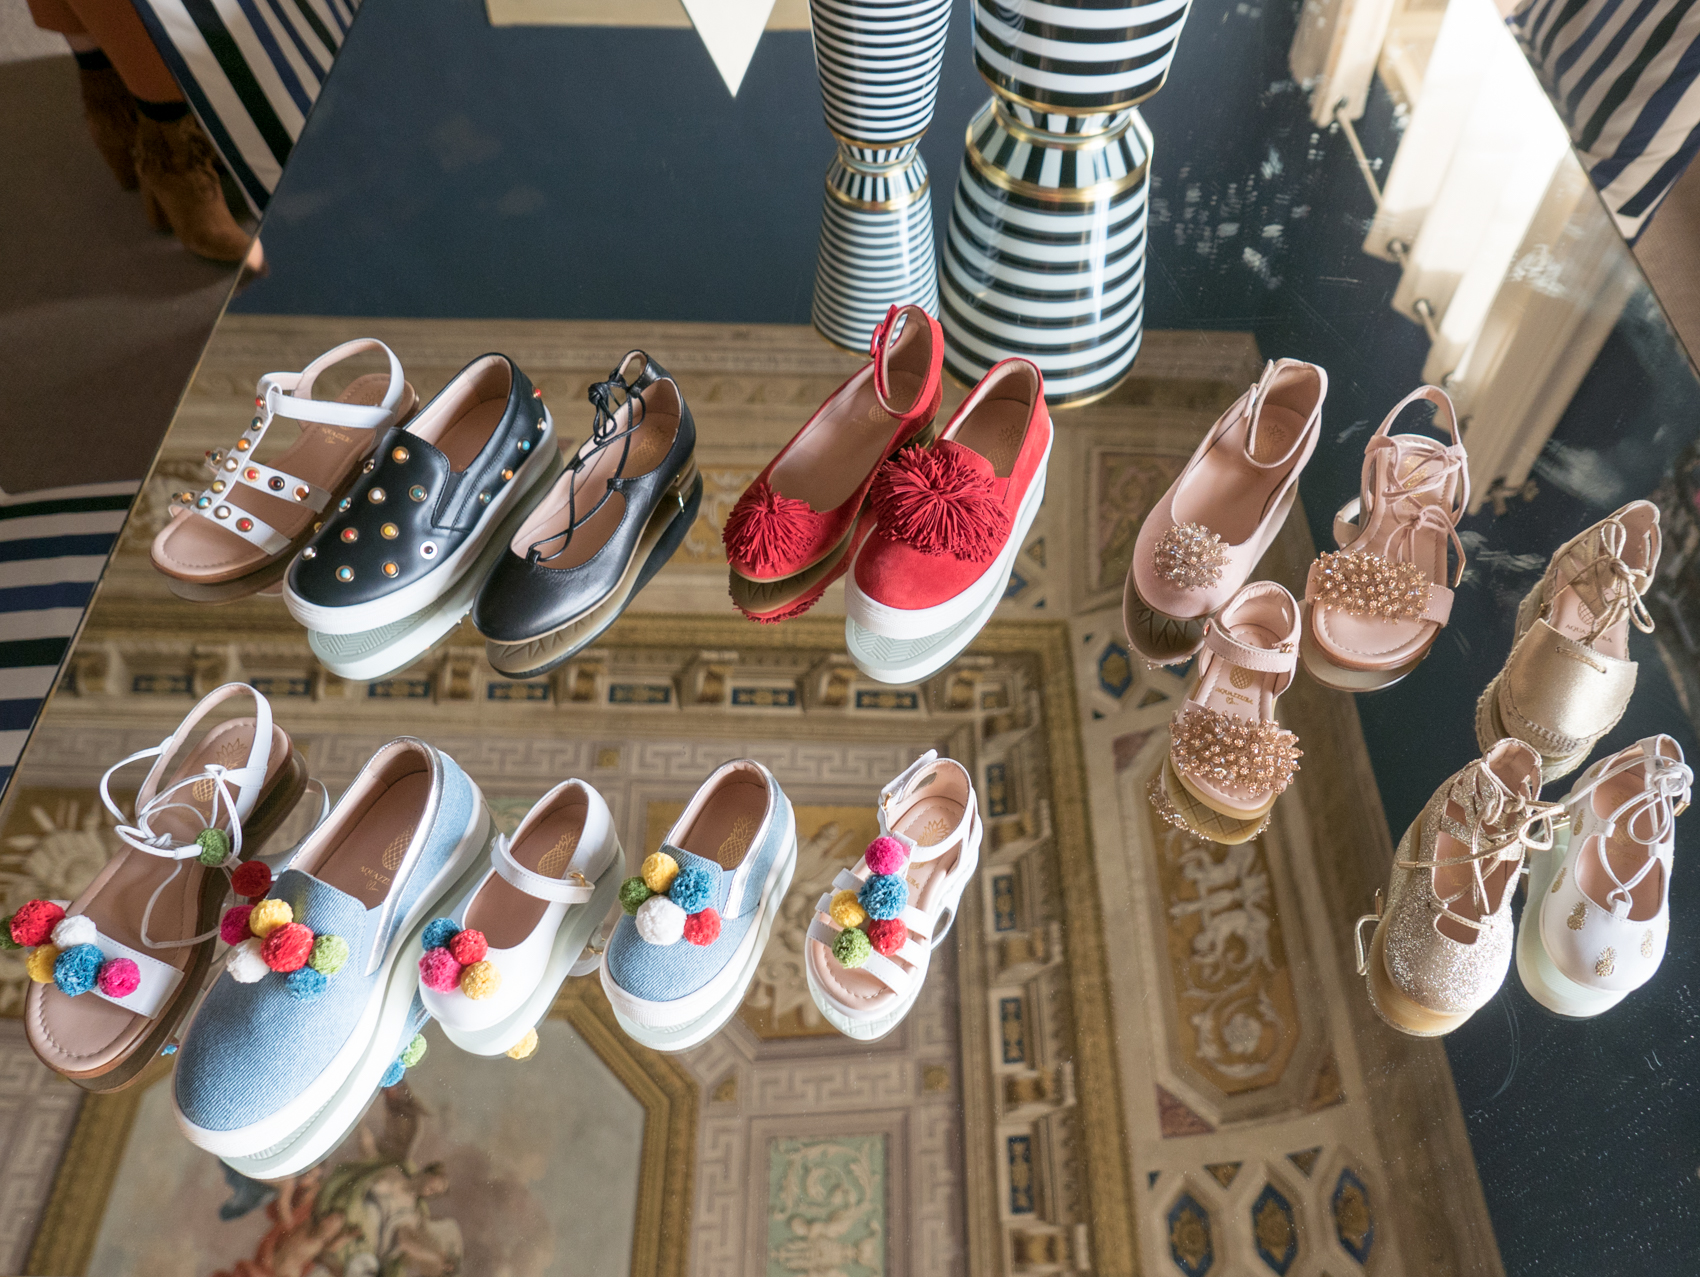 Aquazzura collection for girls, launching in January 2017